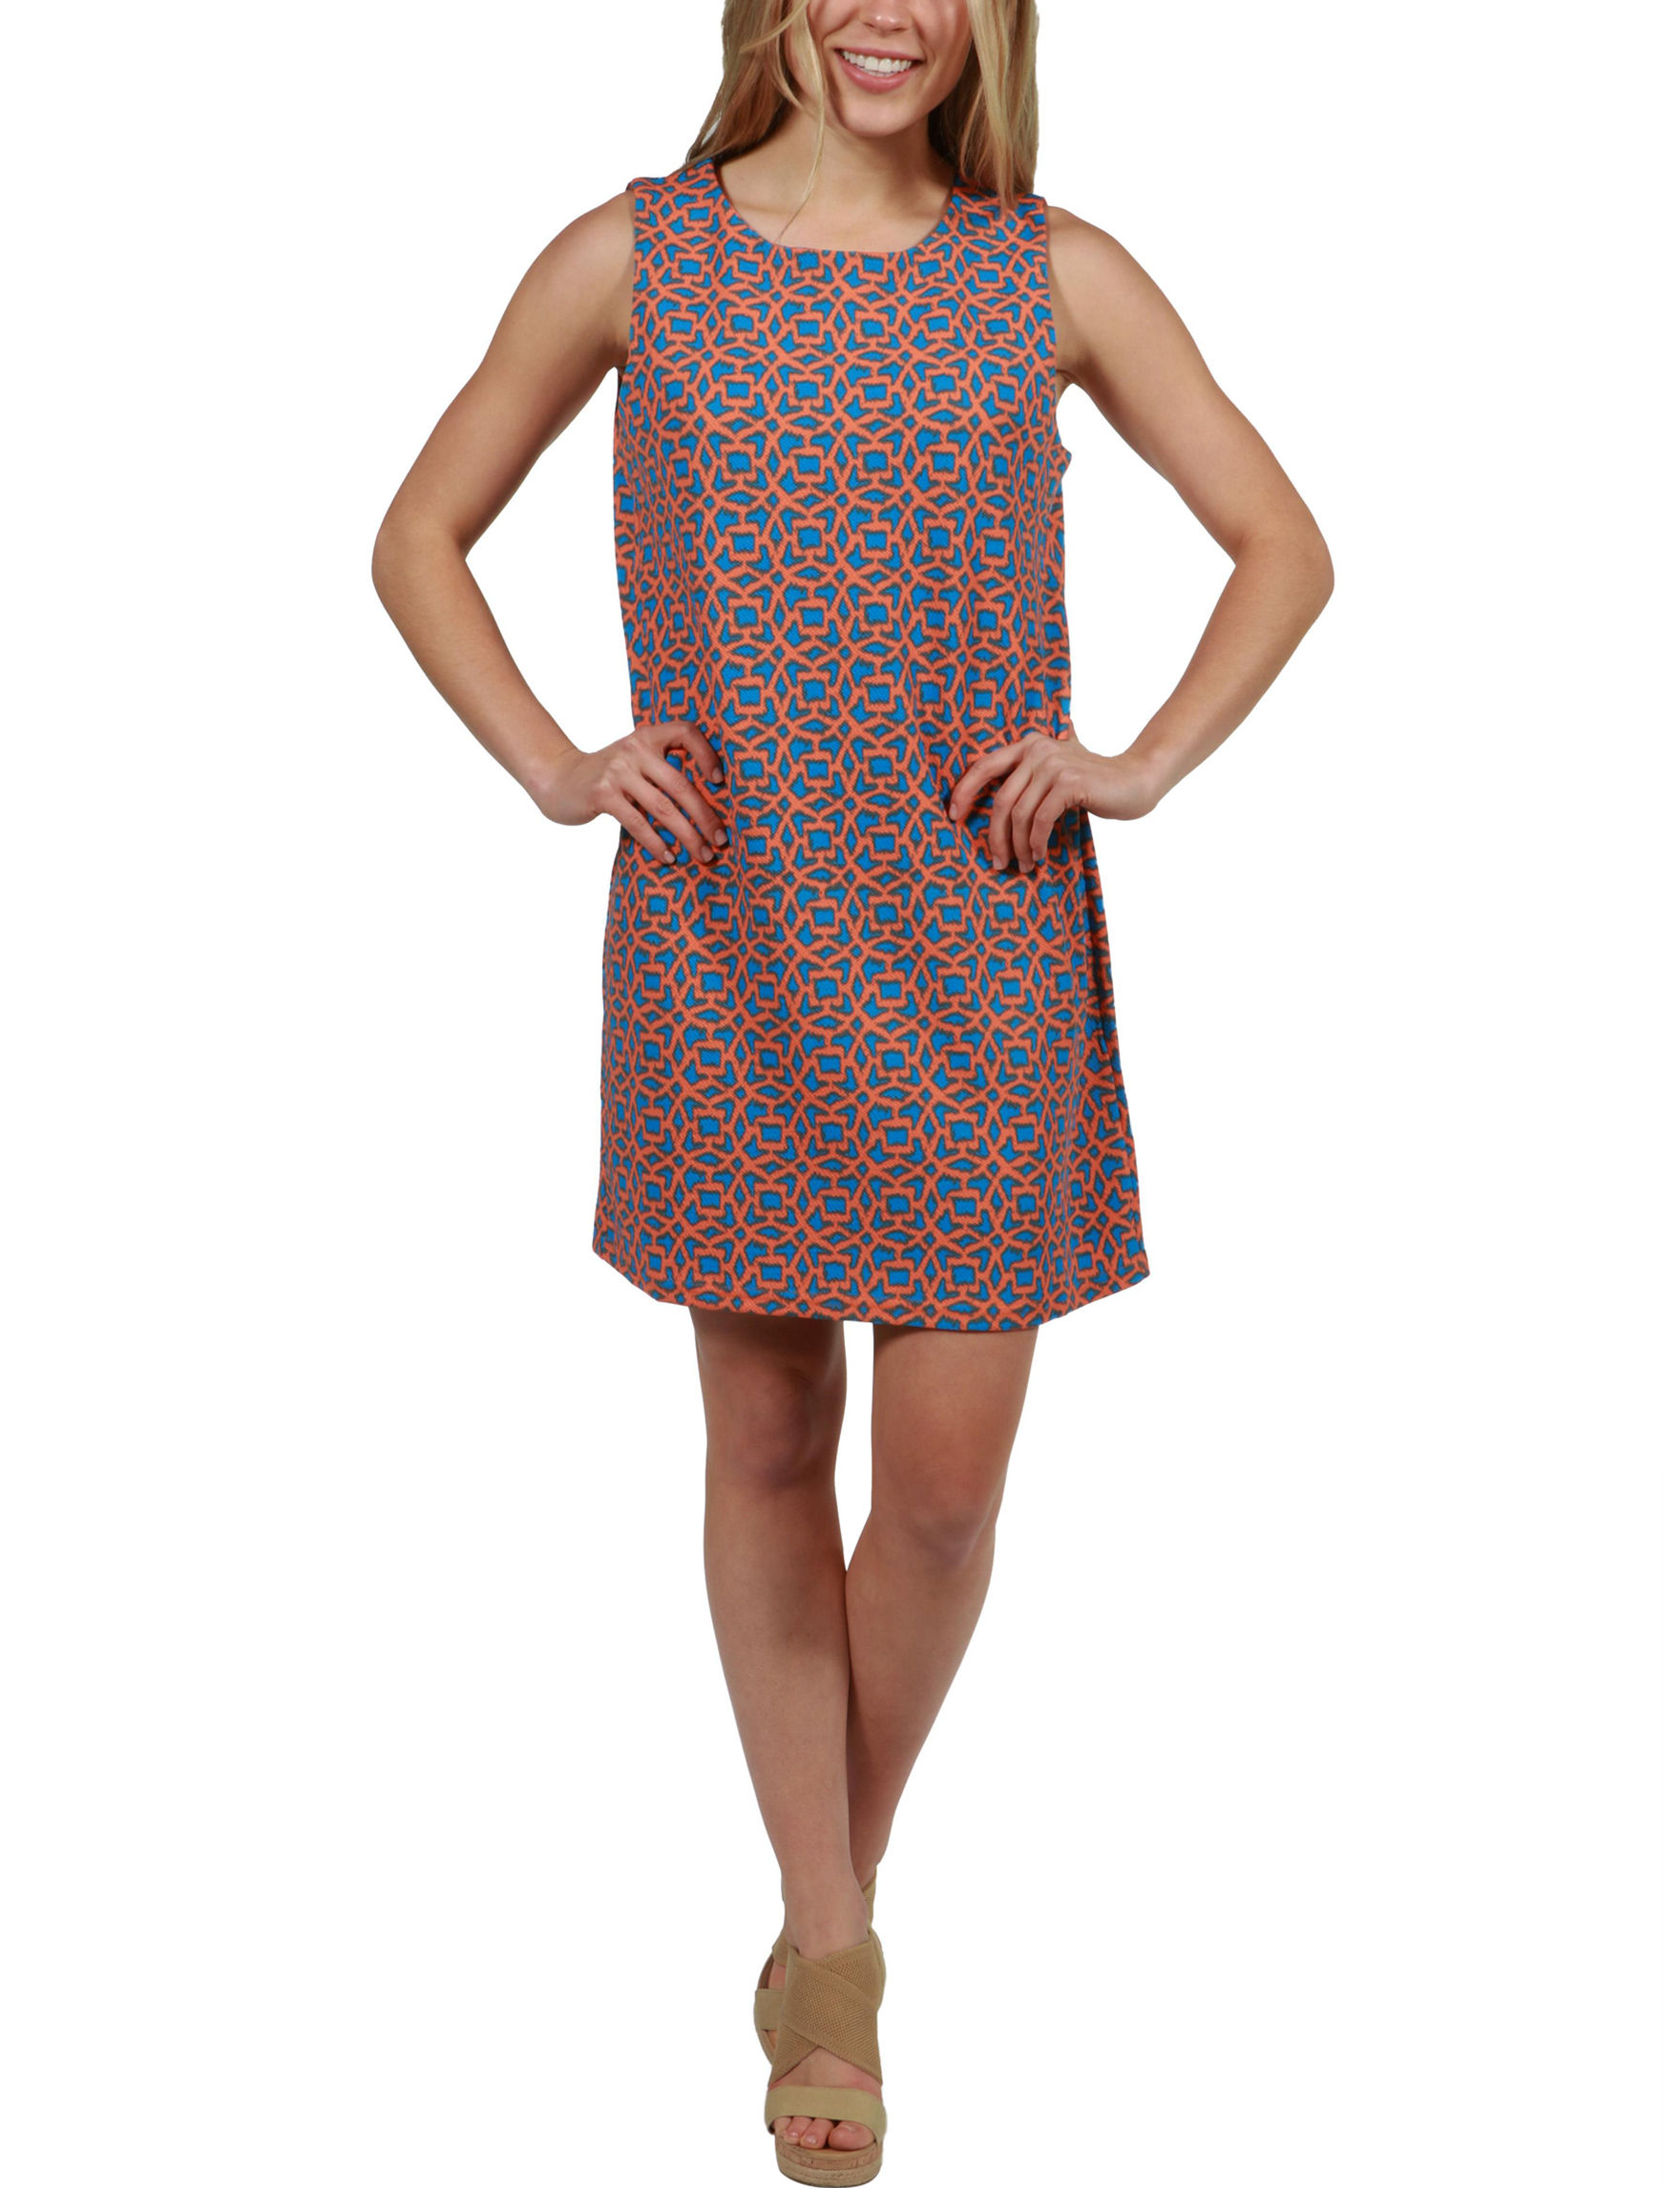 24Seven Comfort Apparel Pink Multi Everyday & Casual Shift Dresses